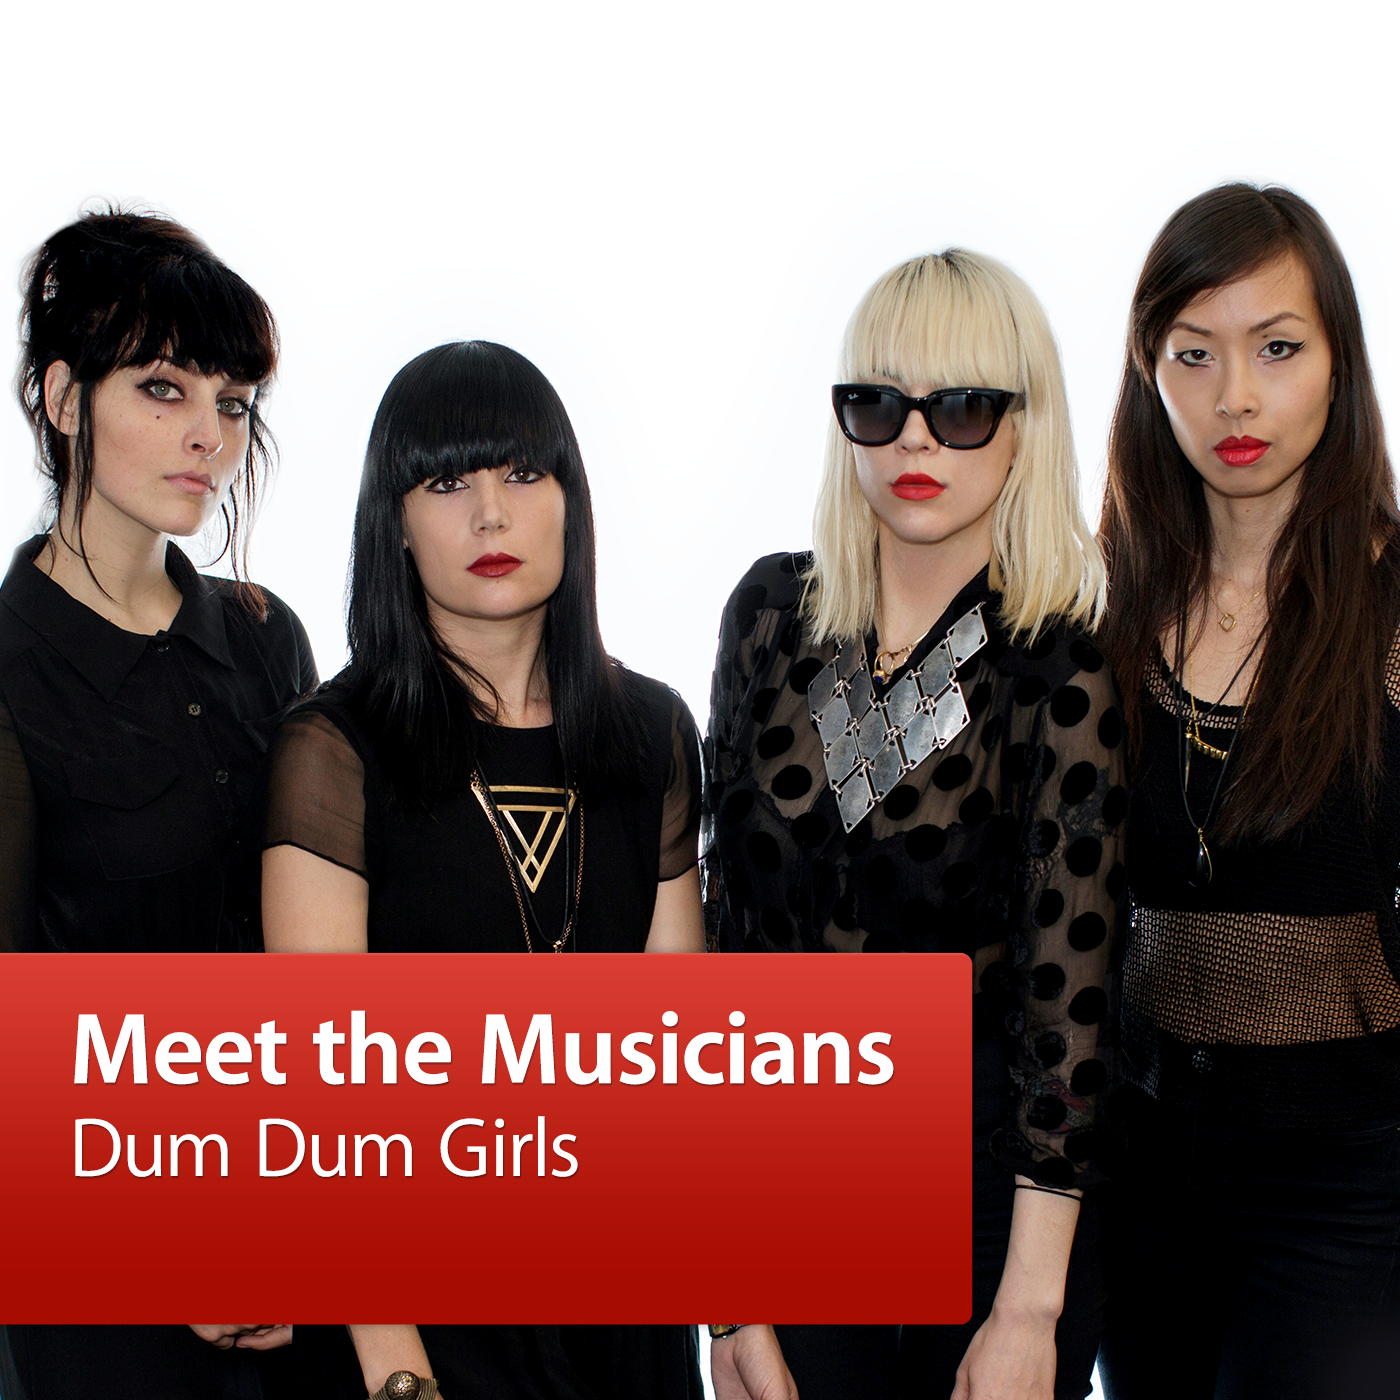 Dum Dum Girls: Meet the Musicians